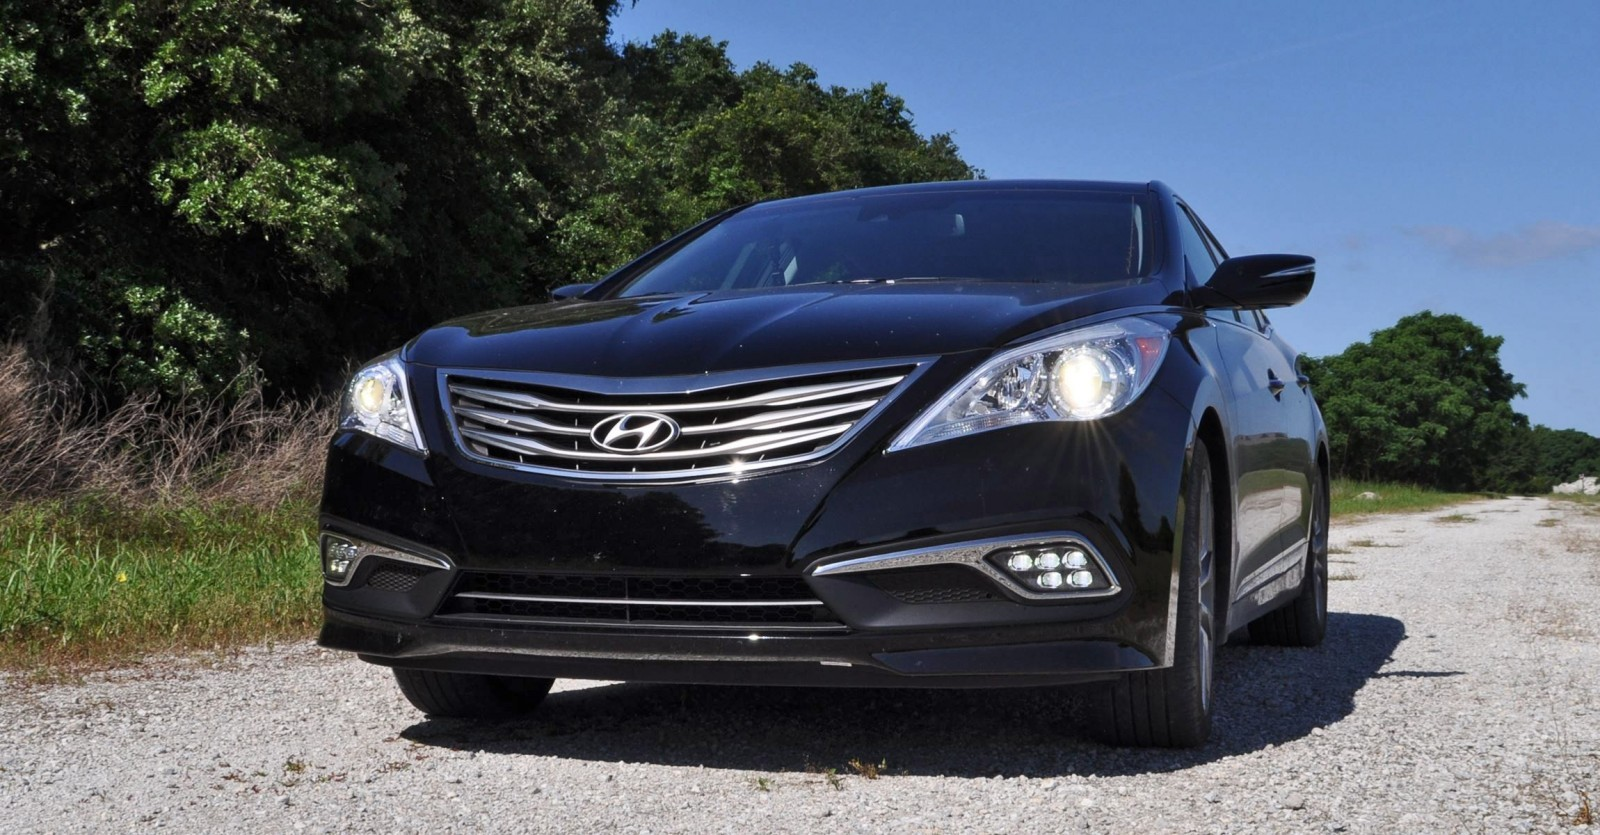 Road Test Review - 2015 Hyundai AZERA Limited 7